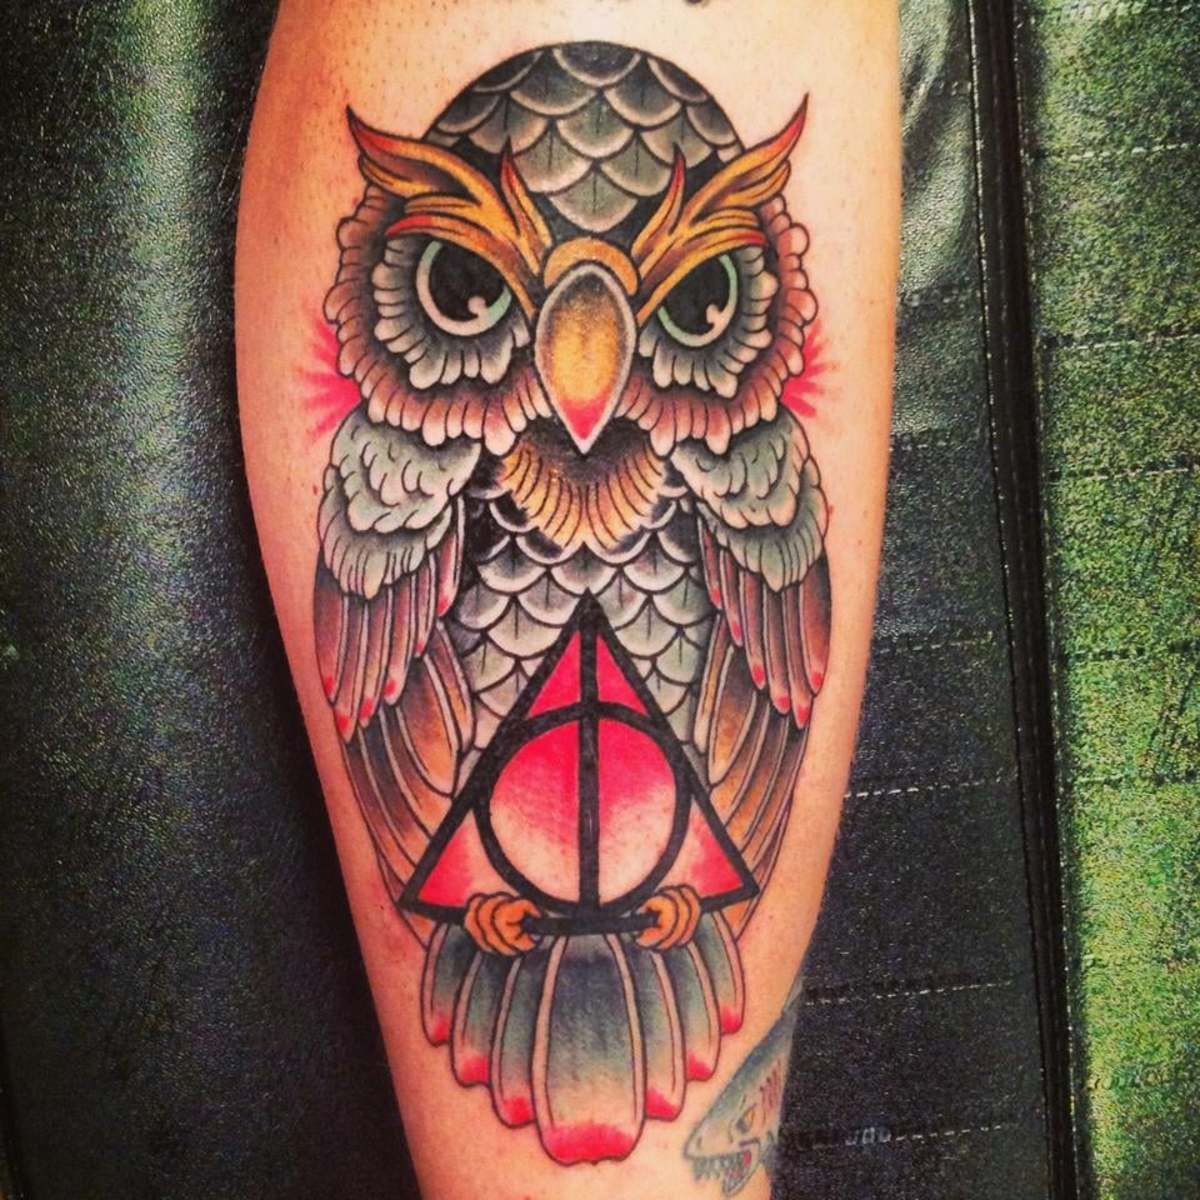 Owl and Deathly Hallows tattoo